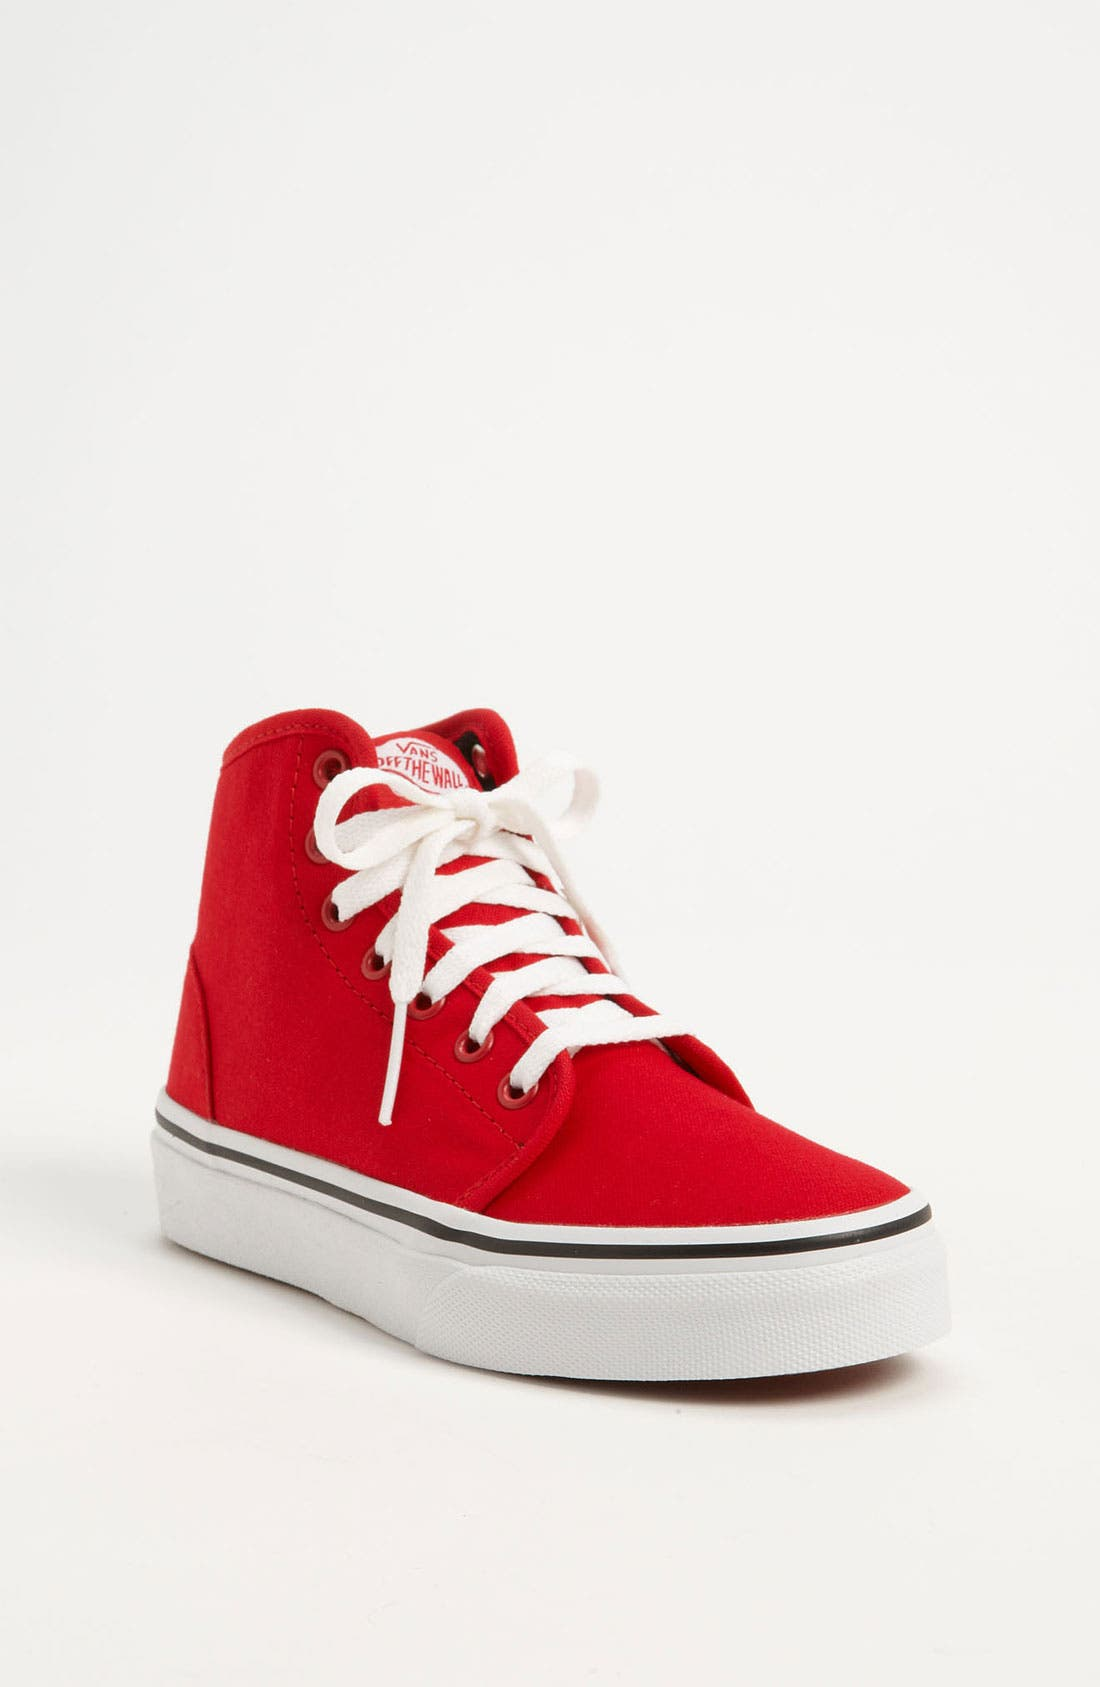 Alternate Image 1 Selected - Vans '106 Hi' Sneaker (Toddler, Little Kid & Big Kid)